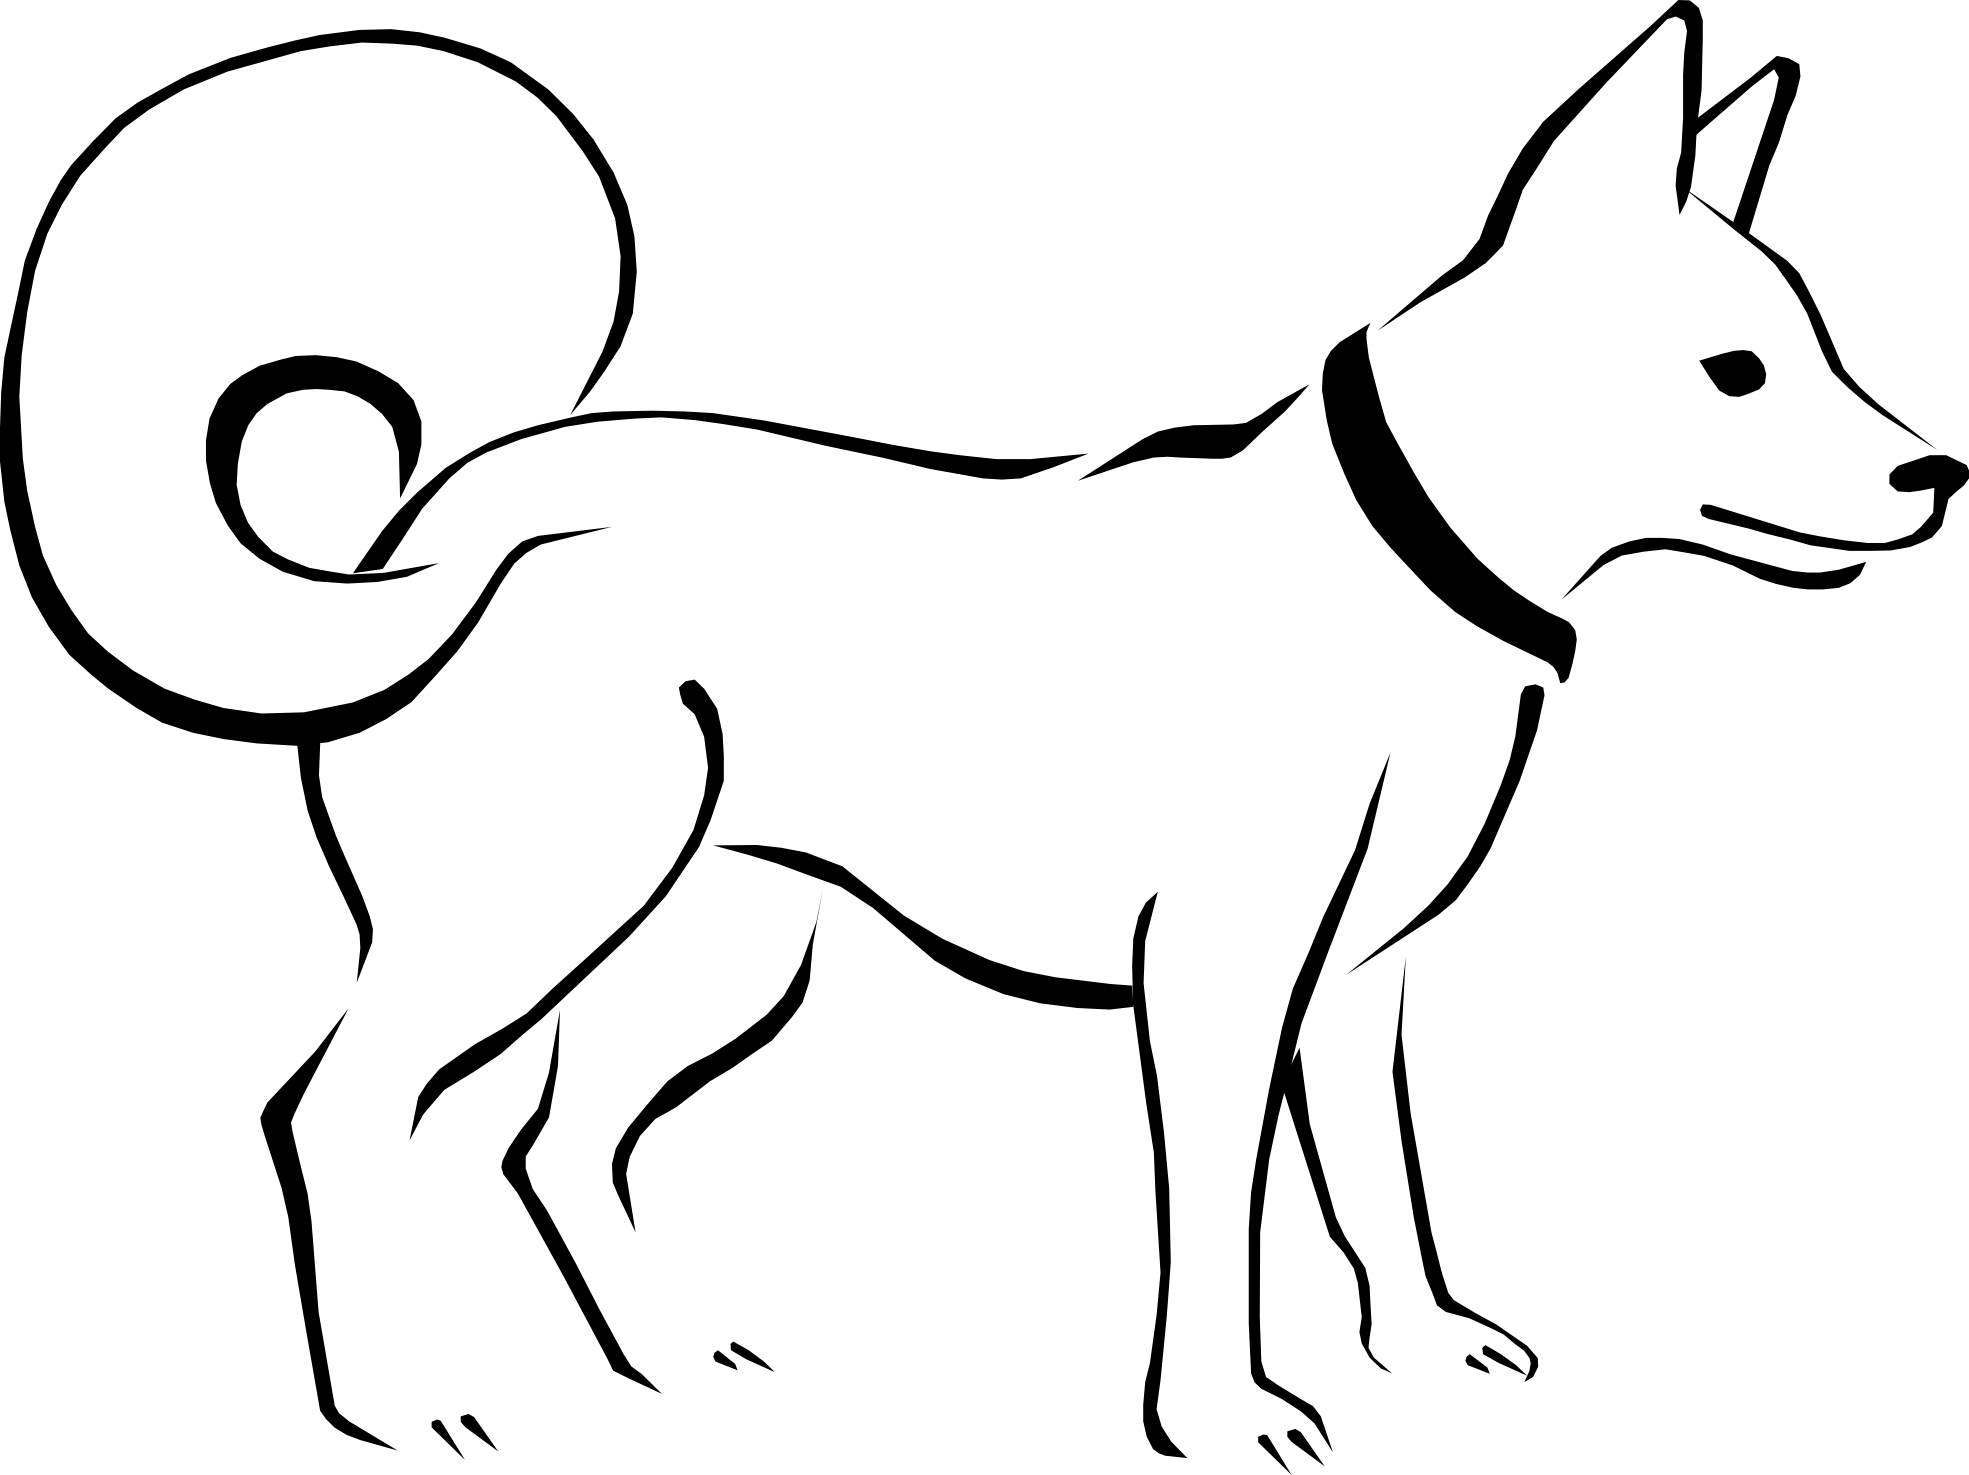 Clipart dog black and white.  collection of high